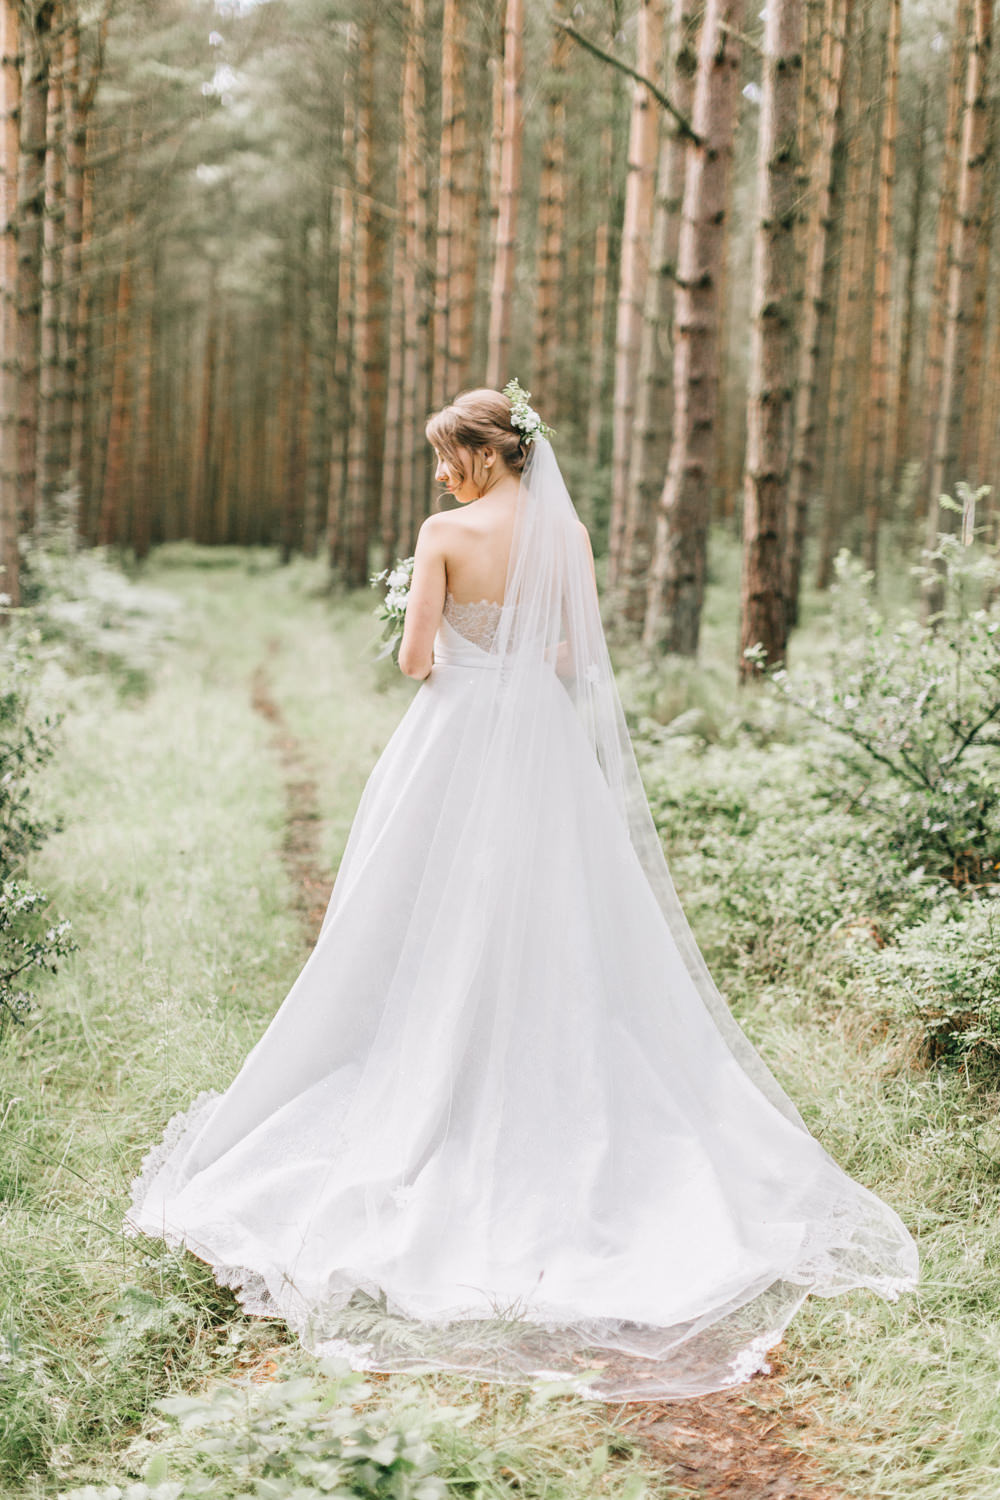 Bride Bridal Dress Gown Lace Strapless A Line Skirt Veil Train Healey Barn Wedding Amy Lou Photography